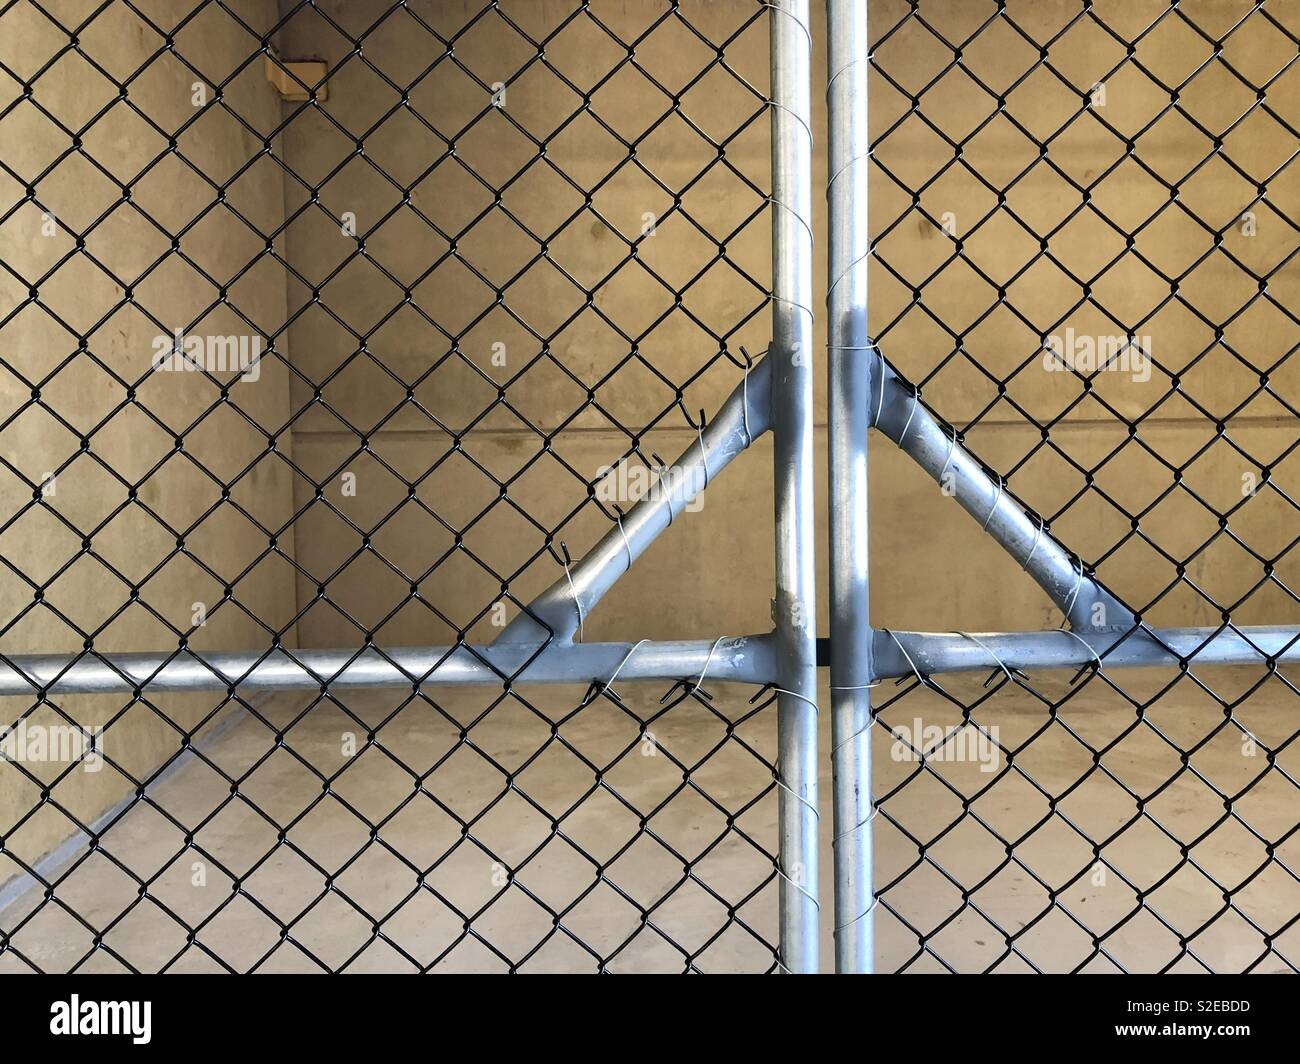 Wire gate. - Stock Image